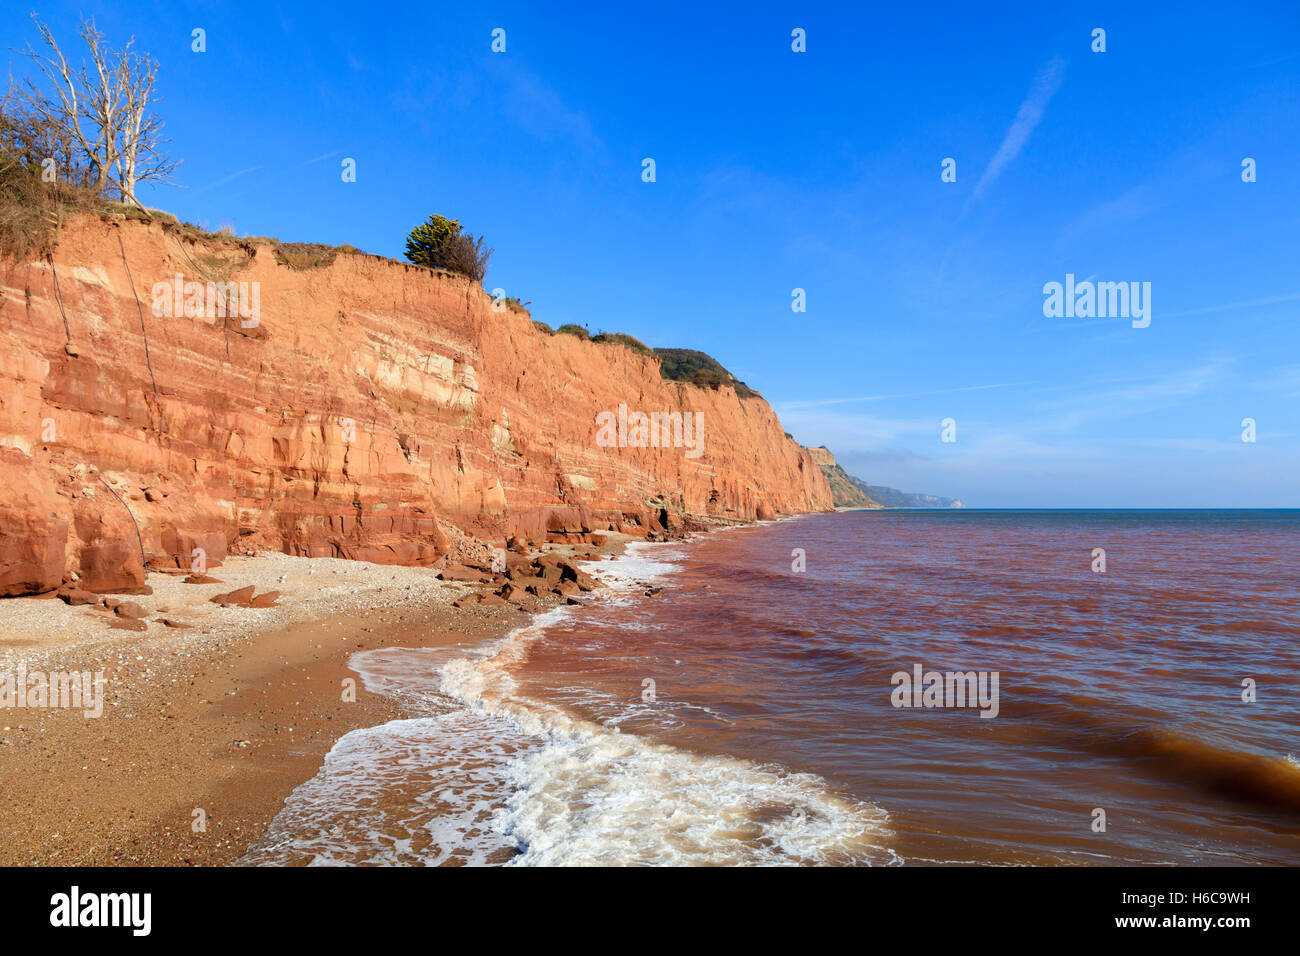 The beach and Otter sandstone Triassic cliffs stretching eastwards from Sidmouth, Devon, UK basking in late October - Stock Image